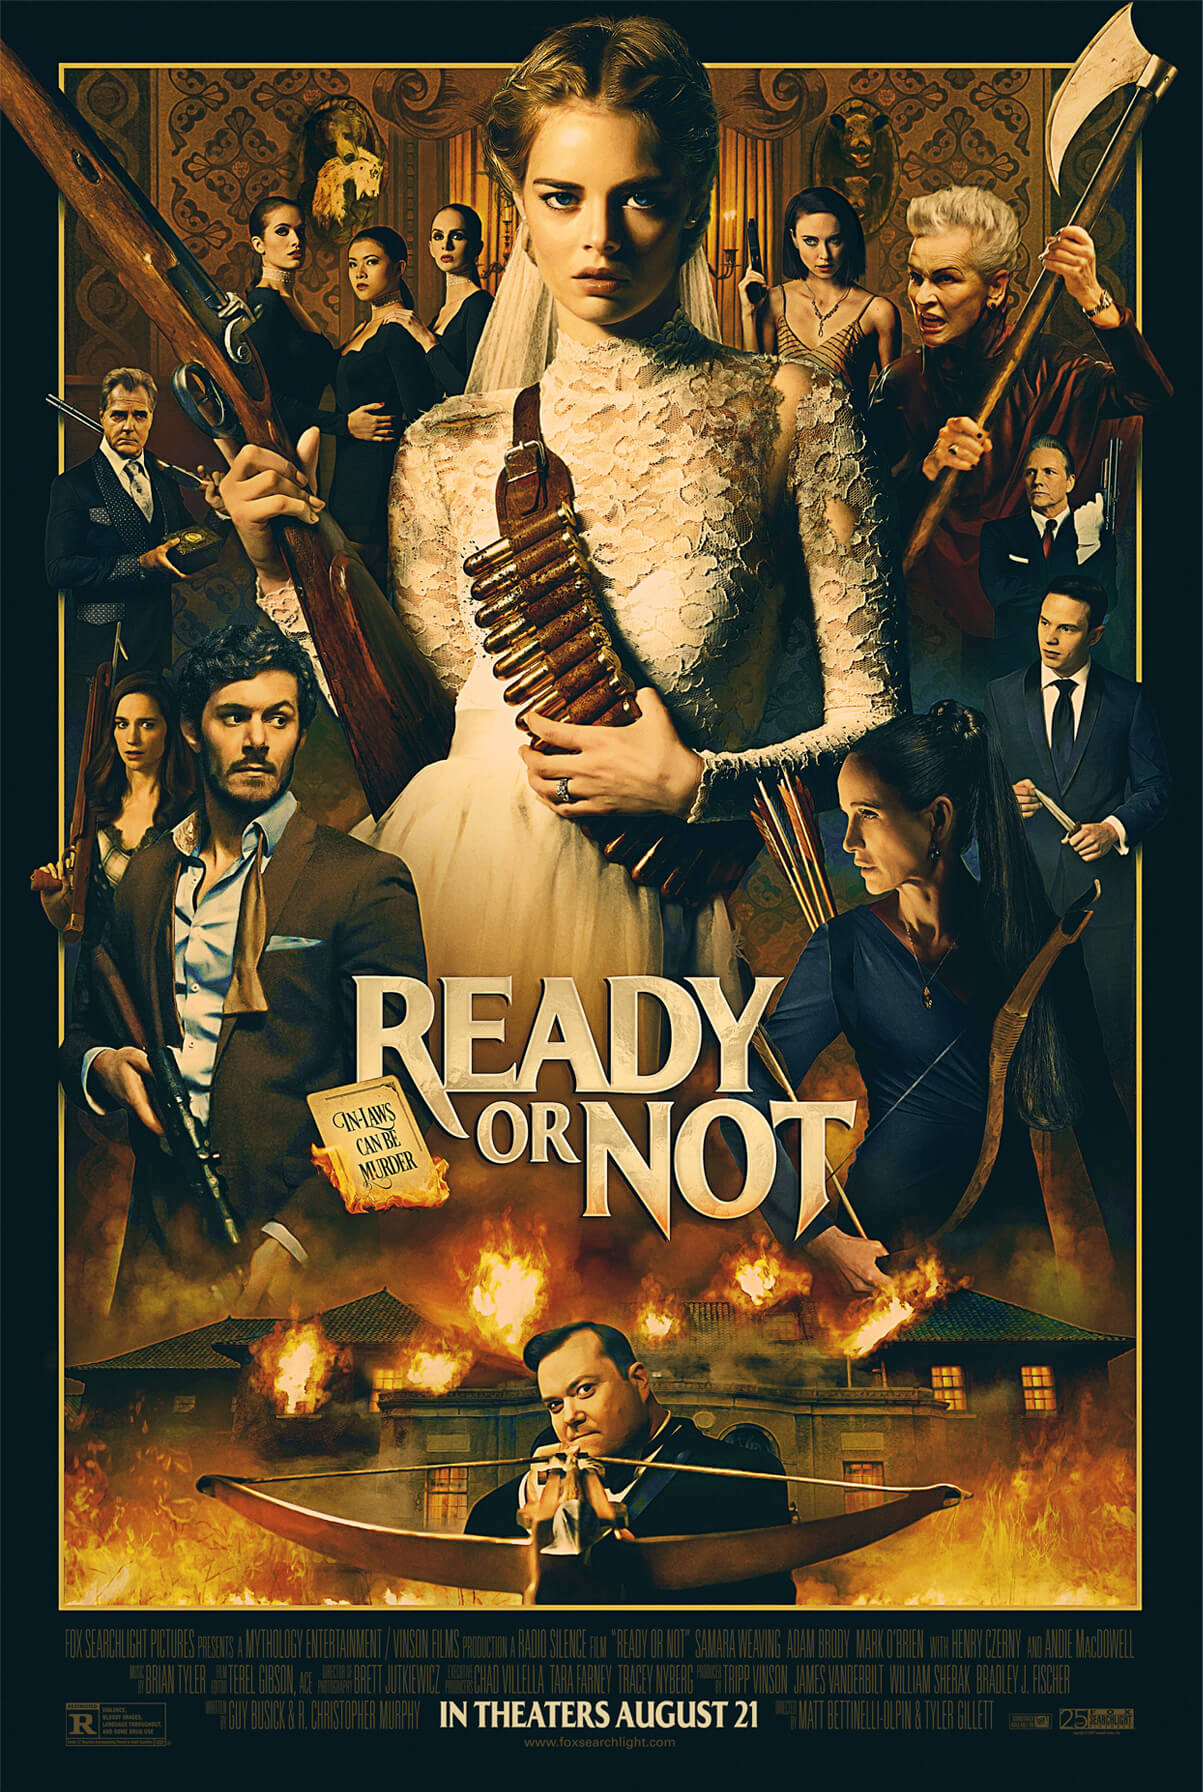 READY OR NOT poster 2019 horror film